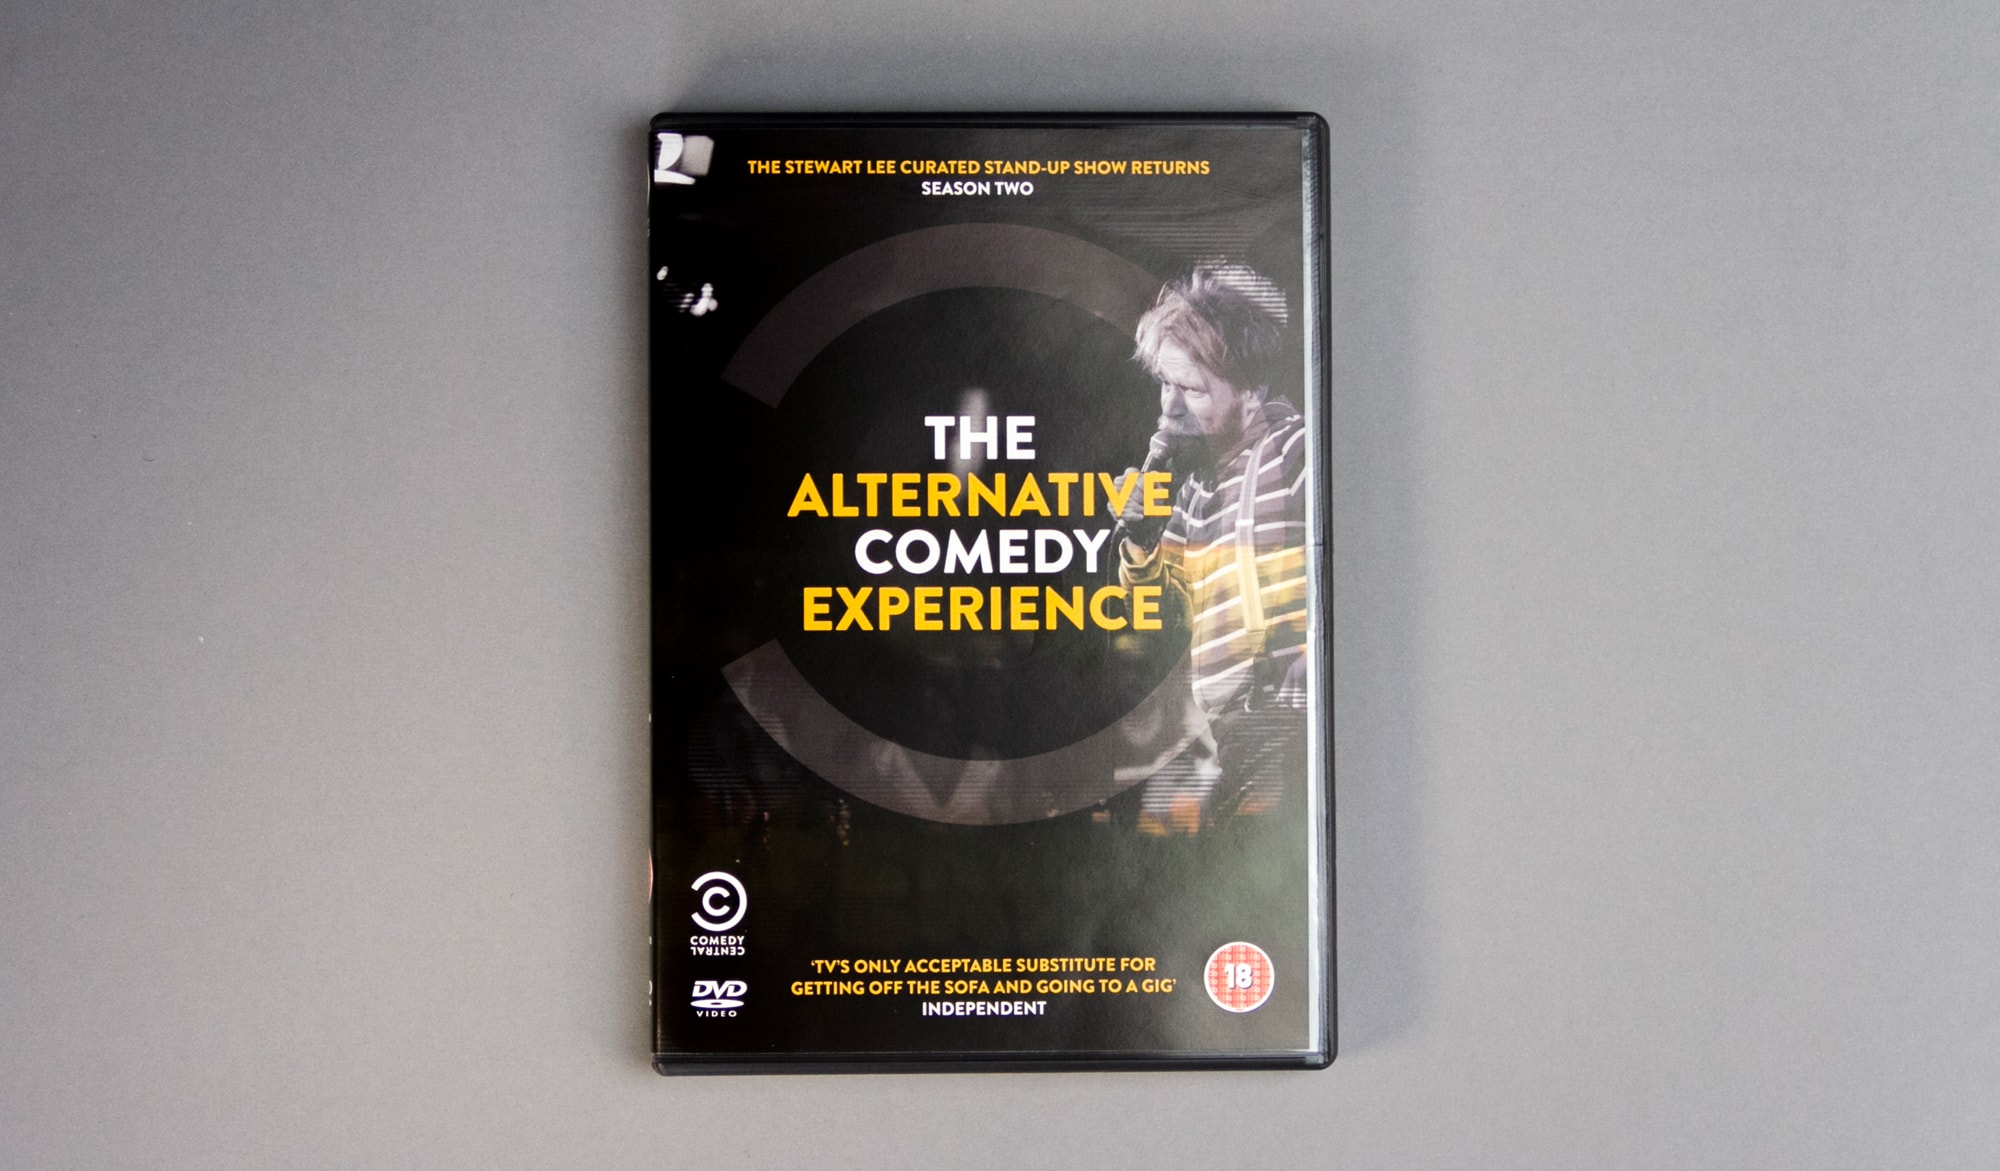 ACE Series 2 DVD cover